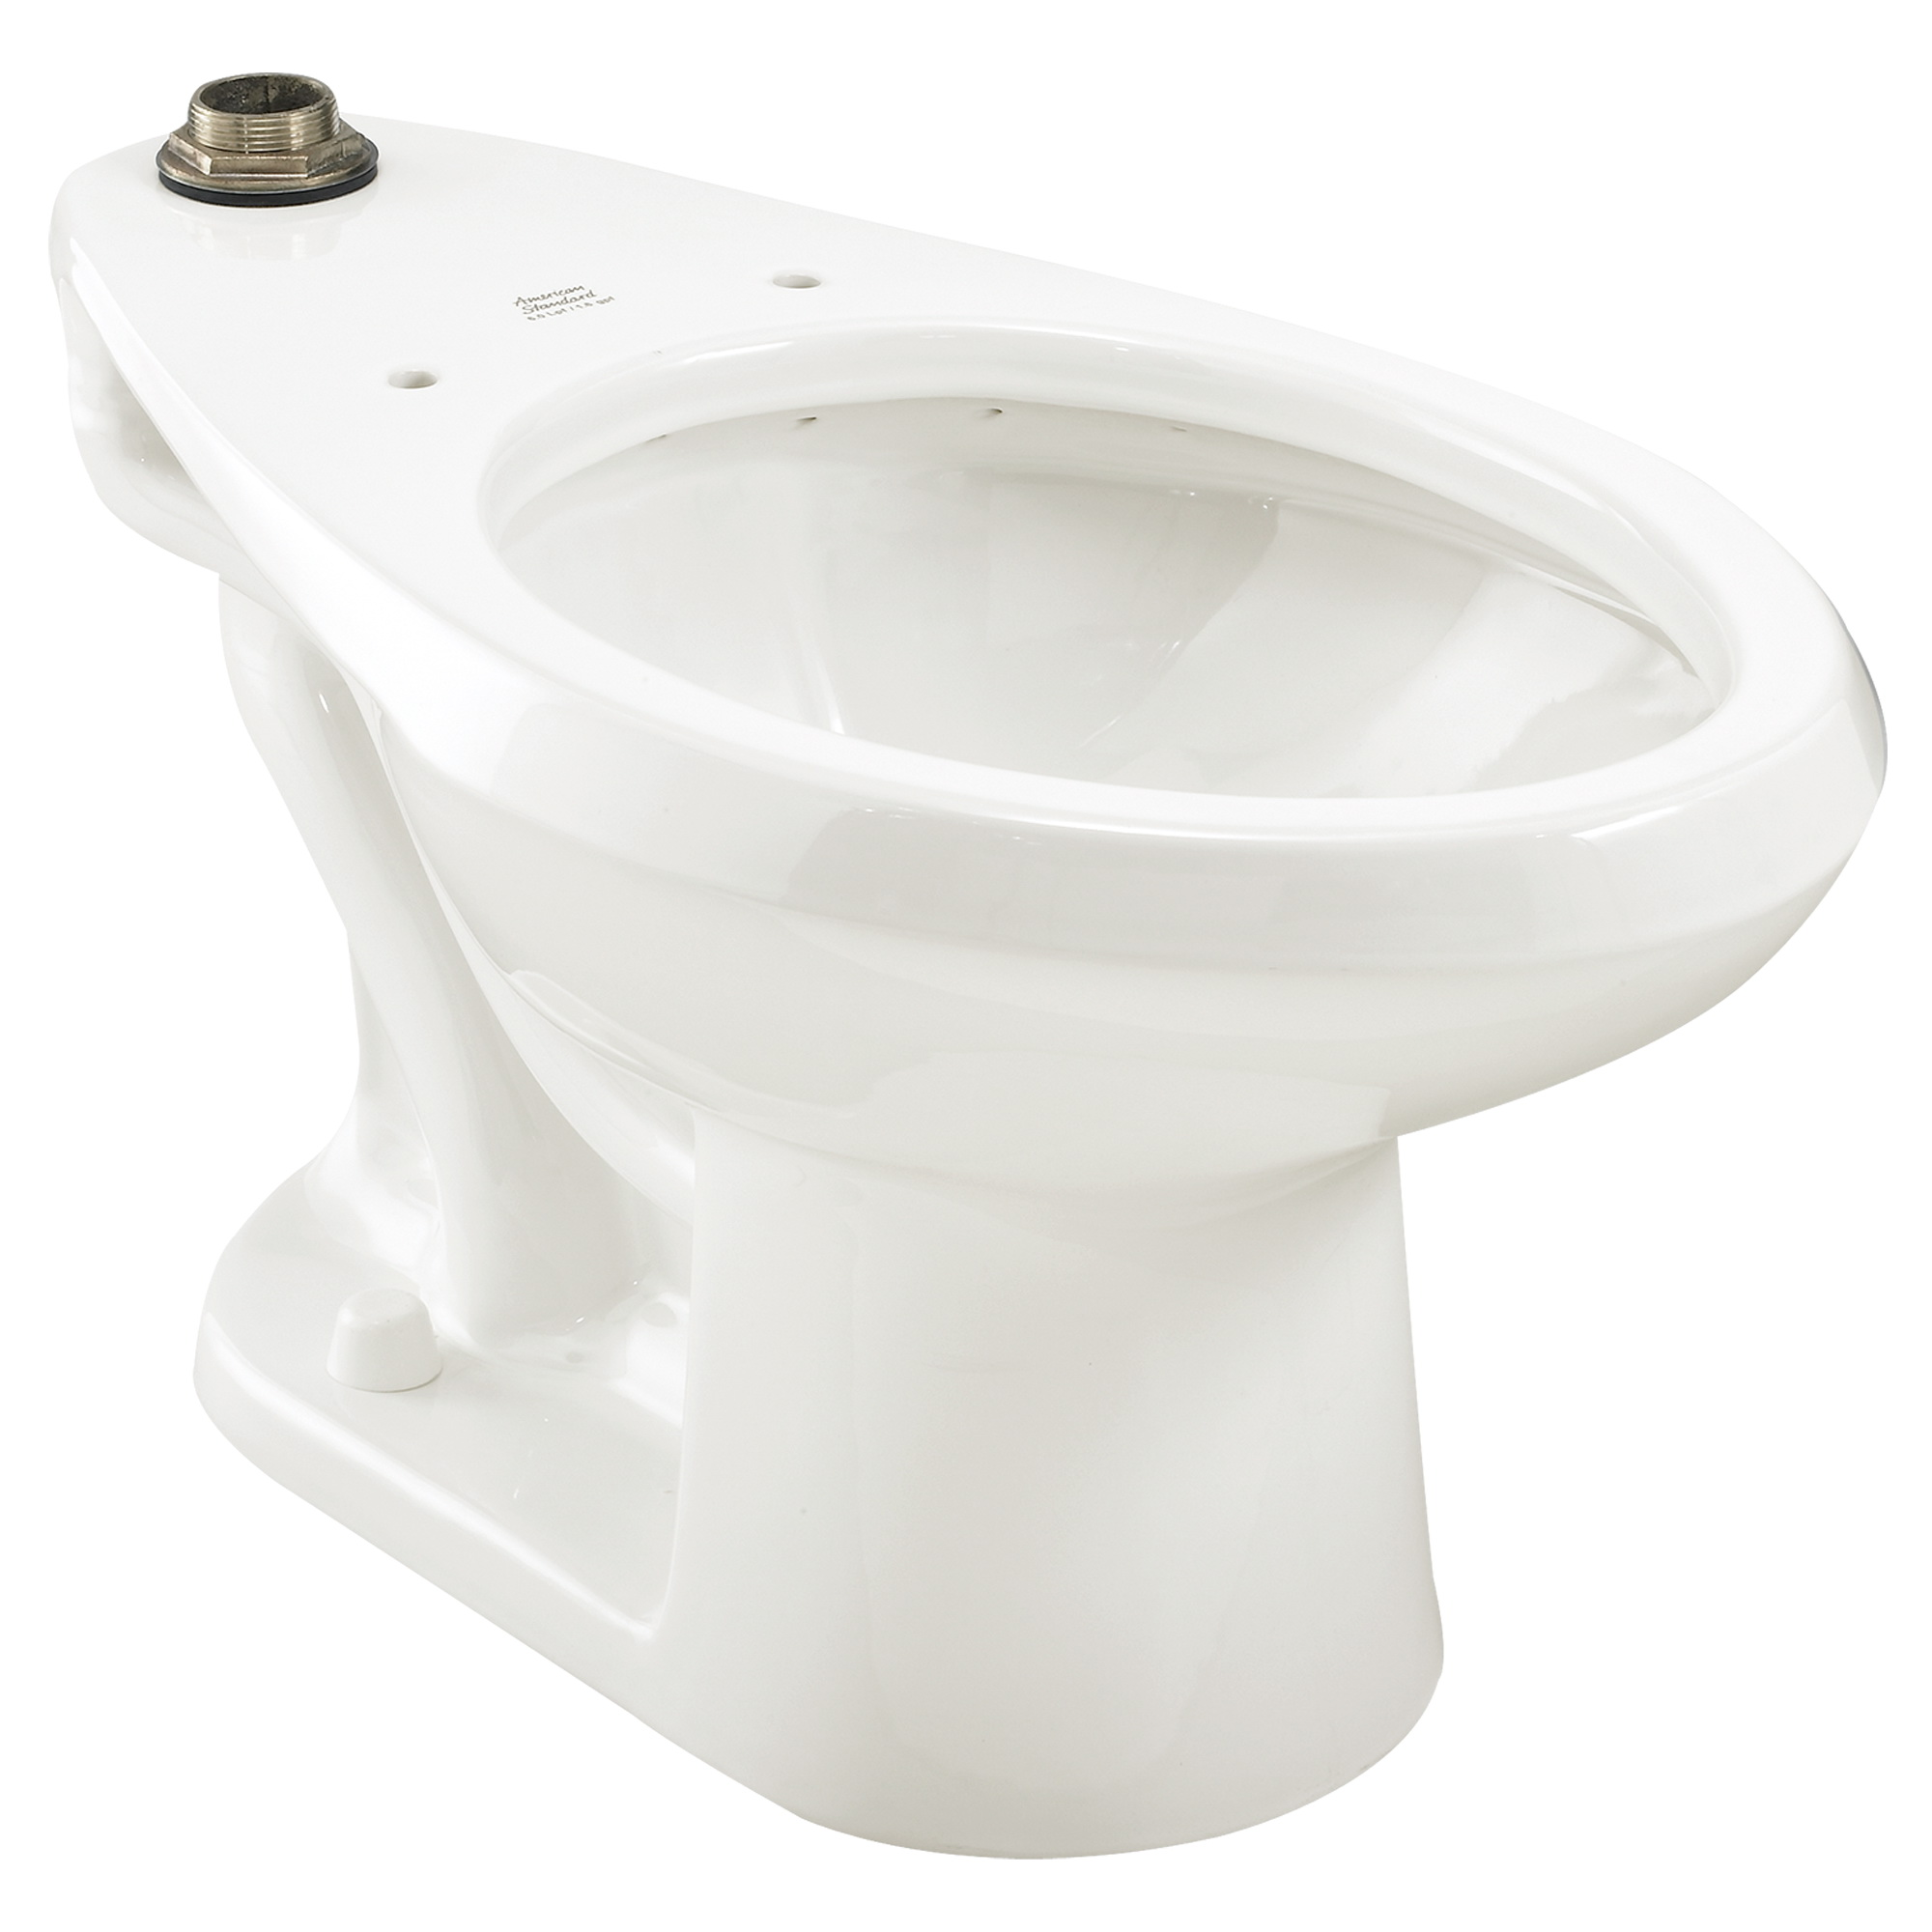 American Standard Madera™ FloWise® 2234.001.020 White Vitreous China Elongated Top Spud Toilet Bowl, 12 in Rough-In, 1.1 - 1.6 gpf